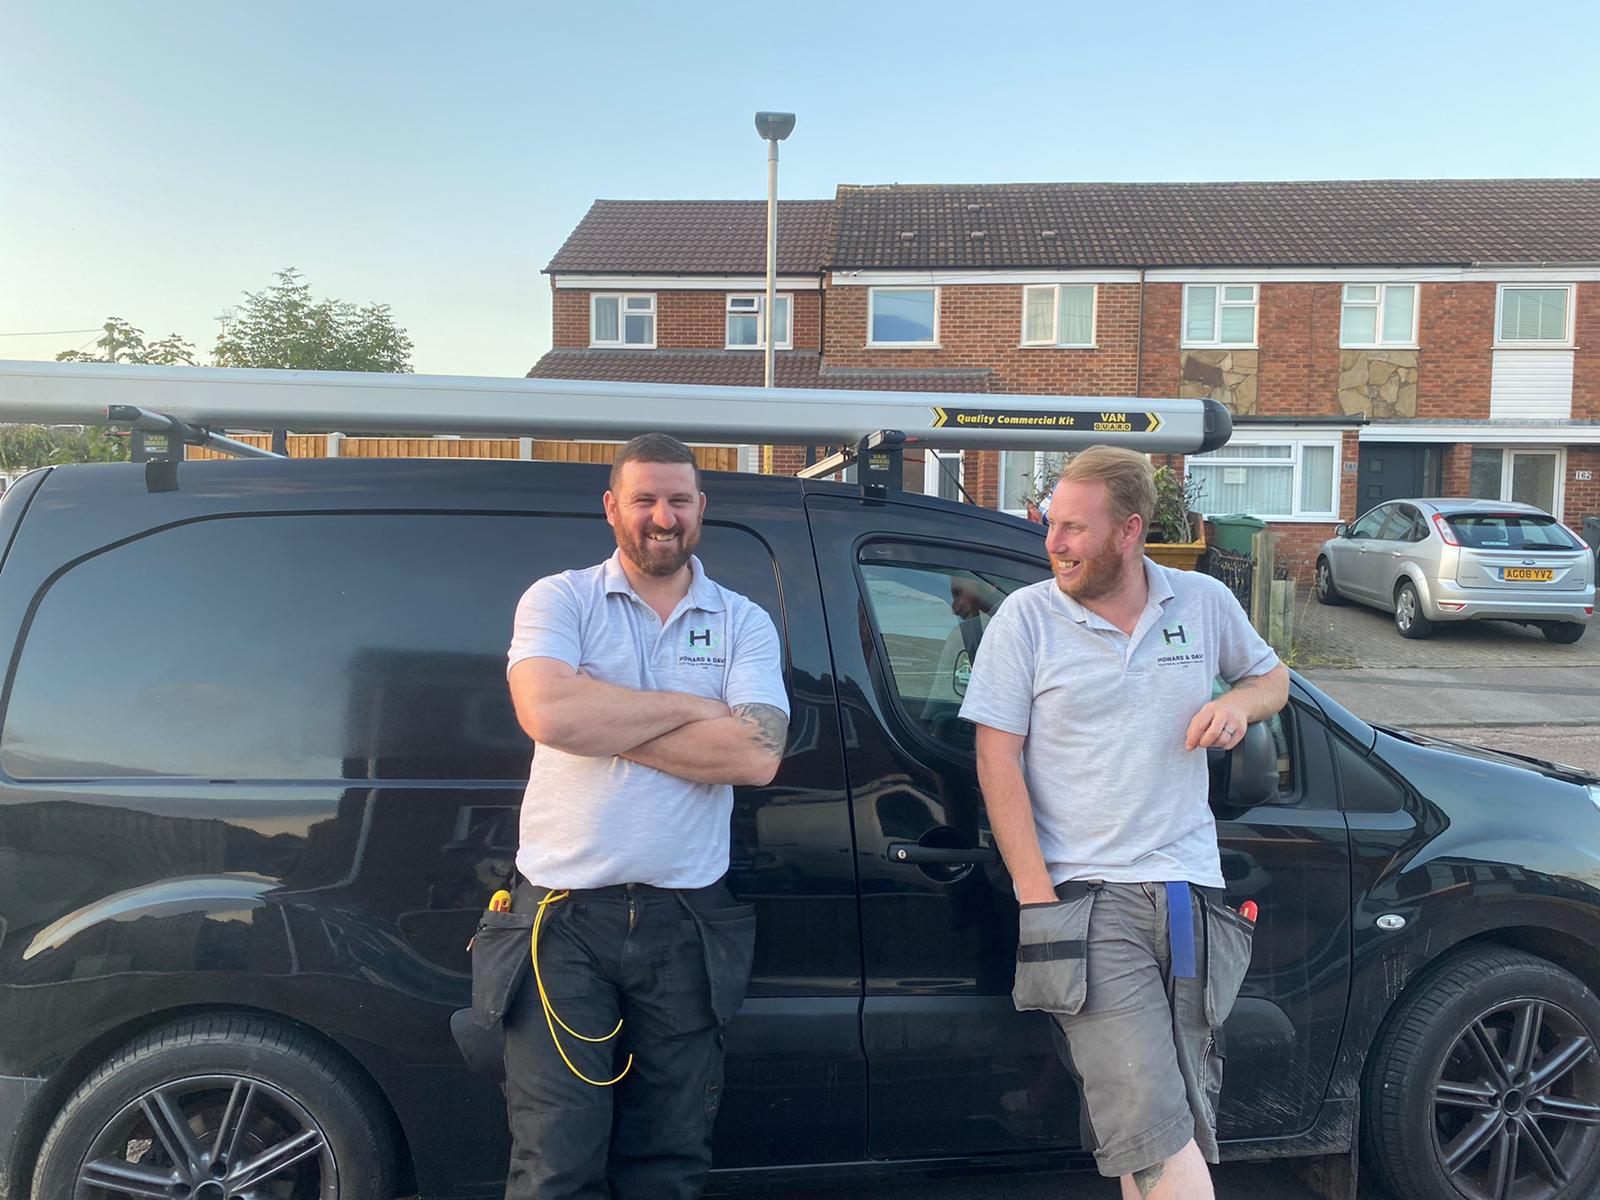 Darren Howard and Clint Davis - Local Electricians in Gloucestershire - local electrical company